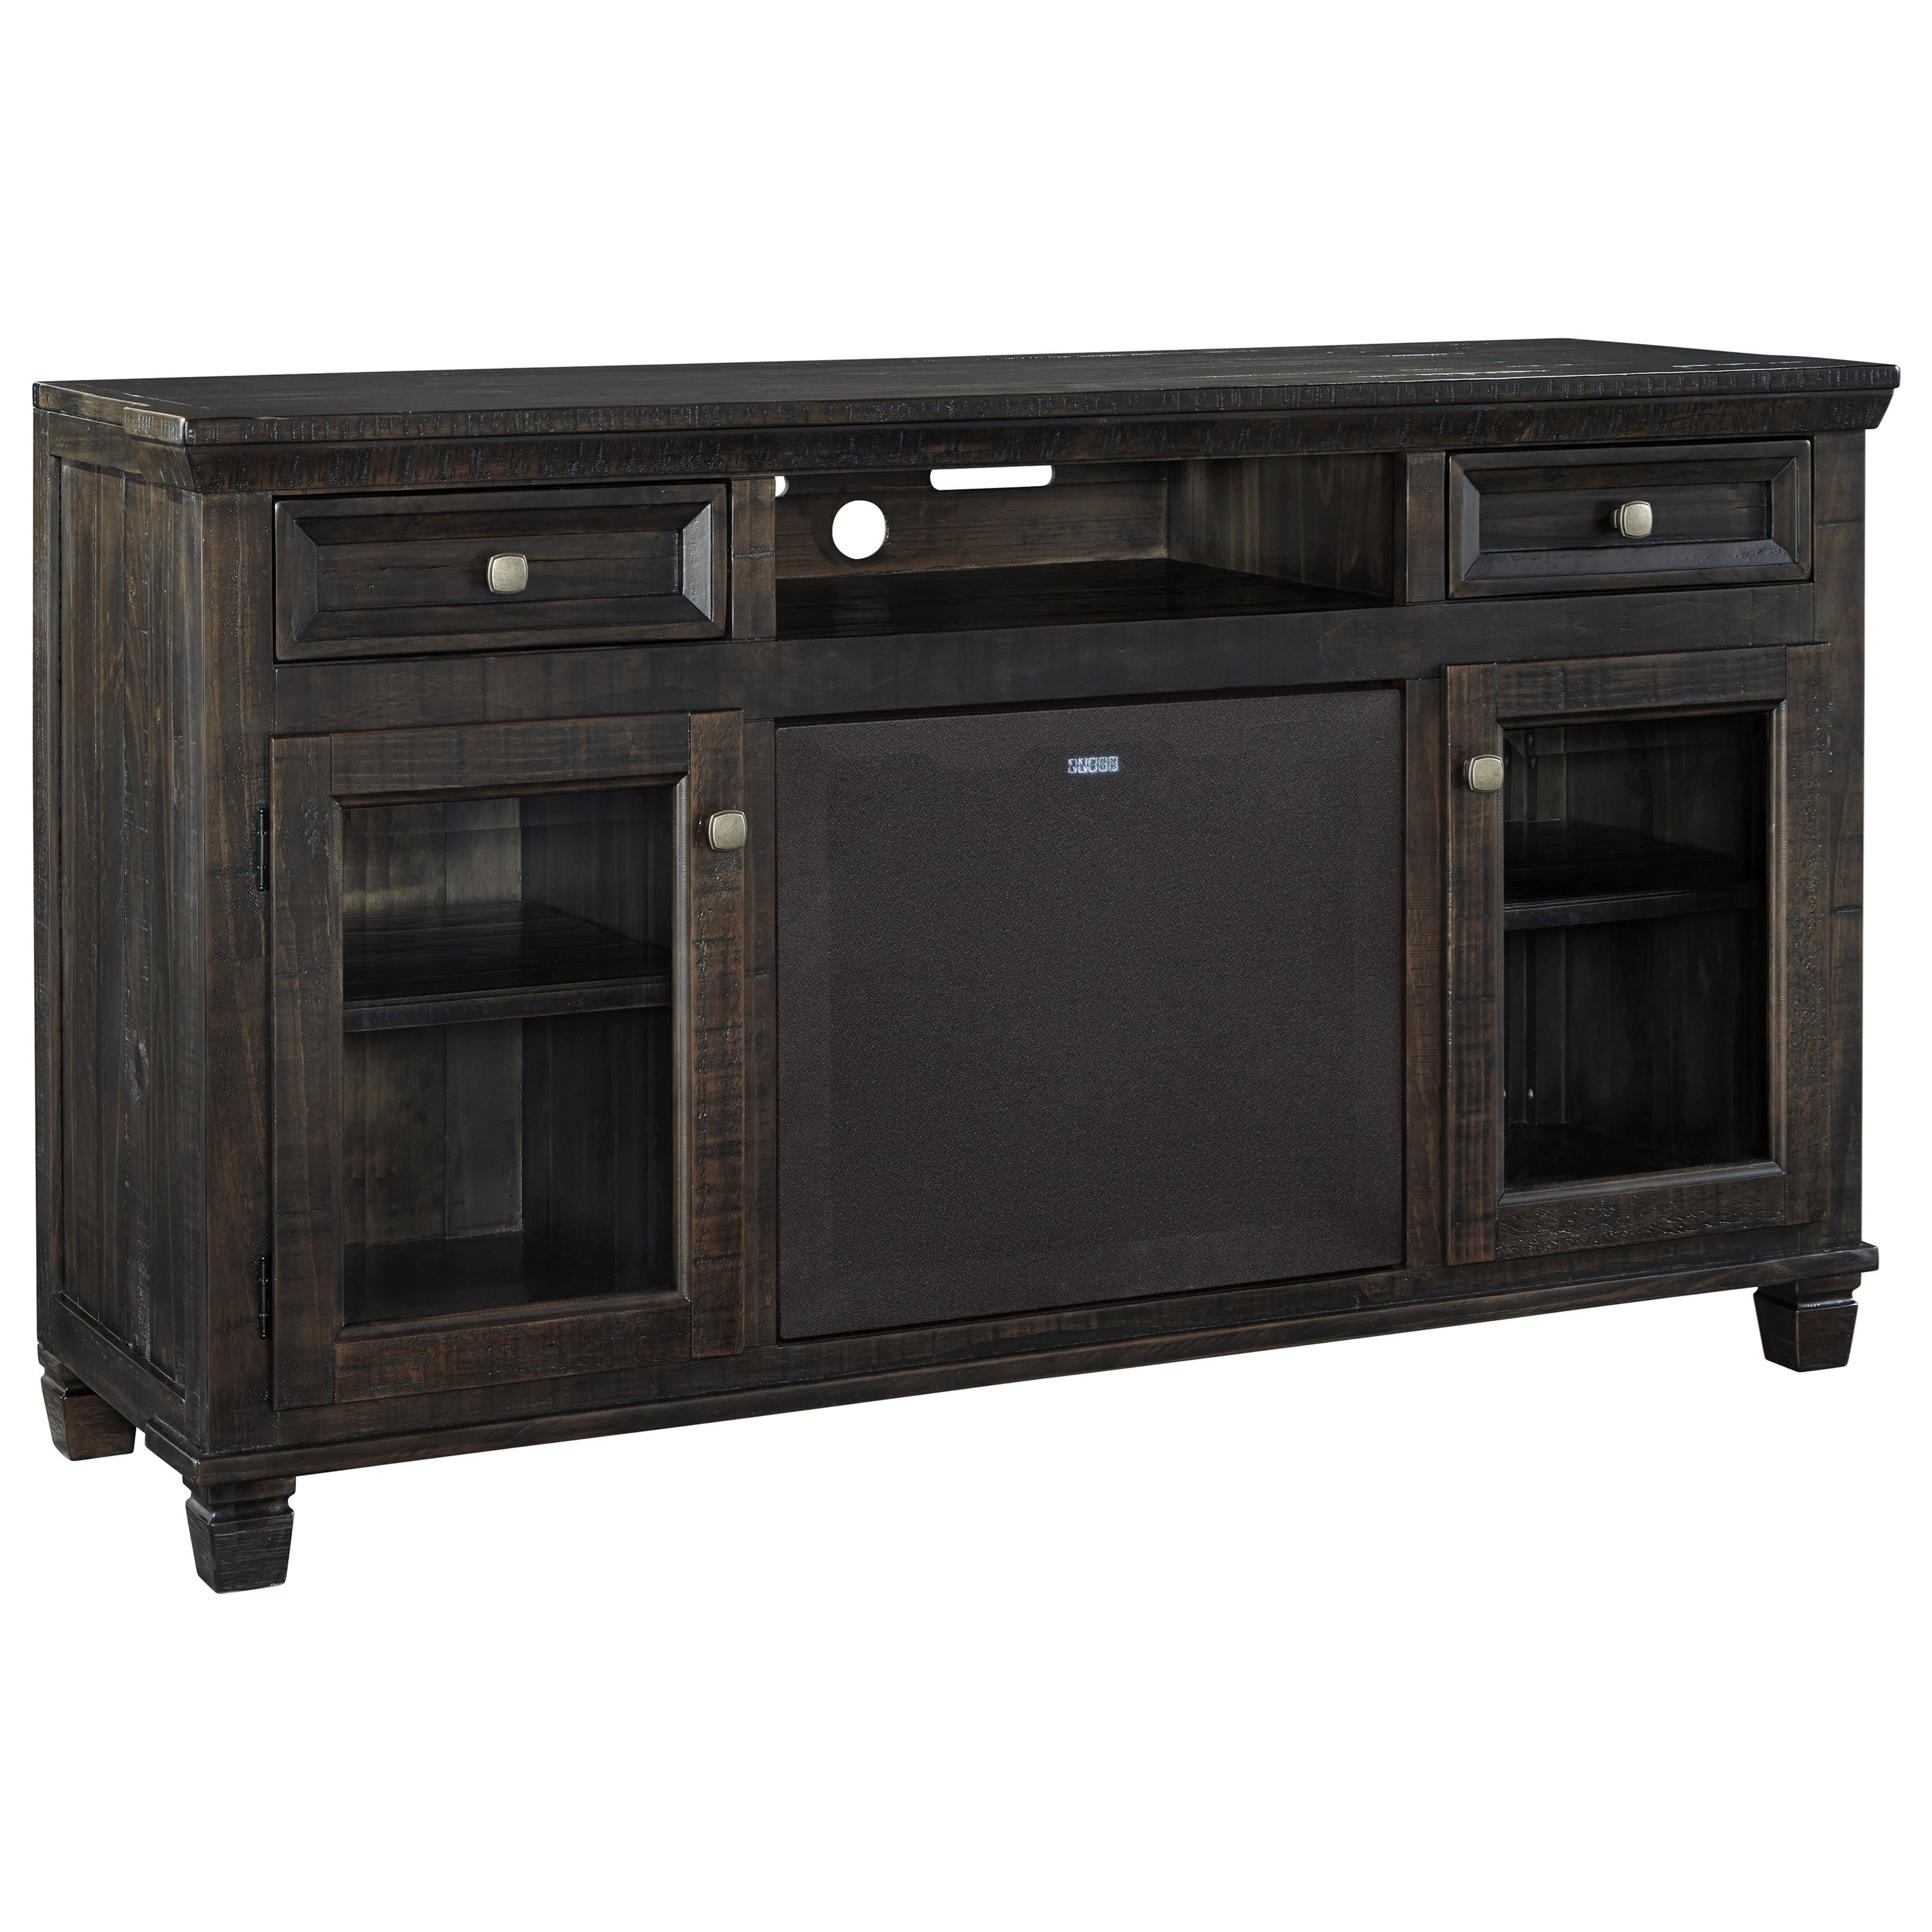 Large TV Stand w/ Large Bluetooth Speaker